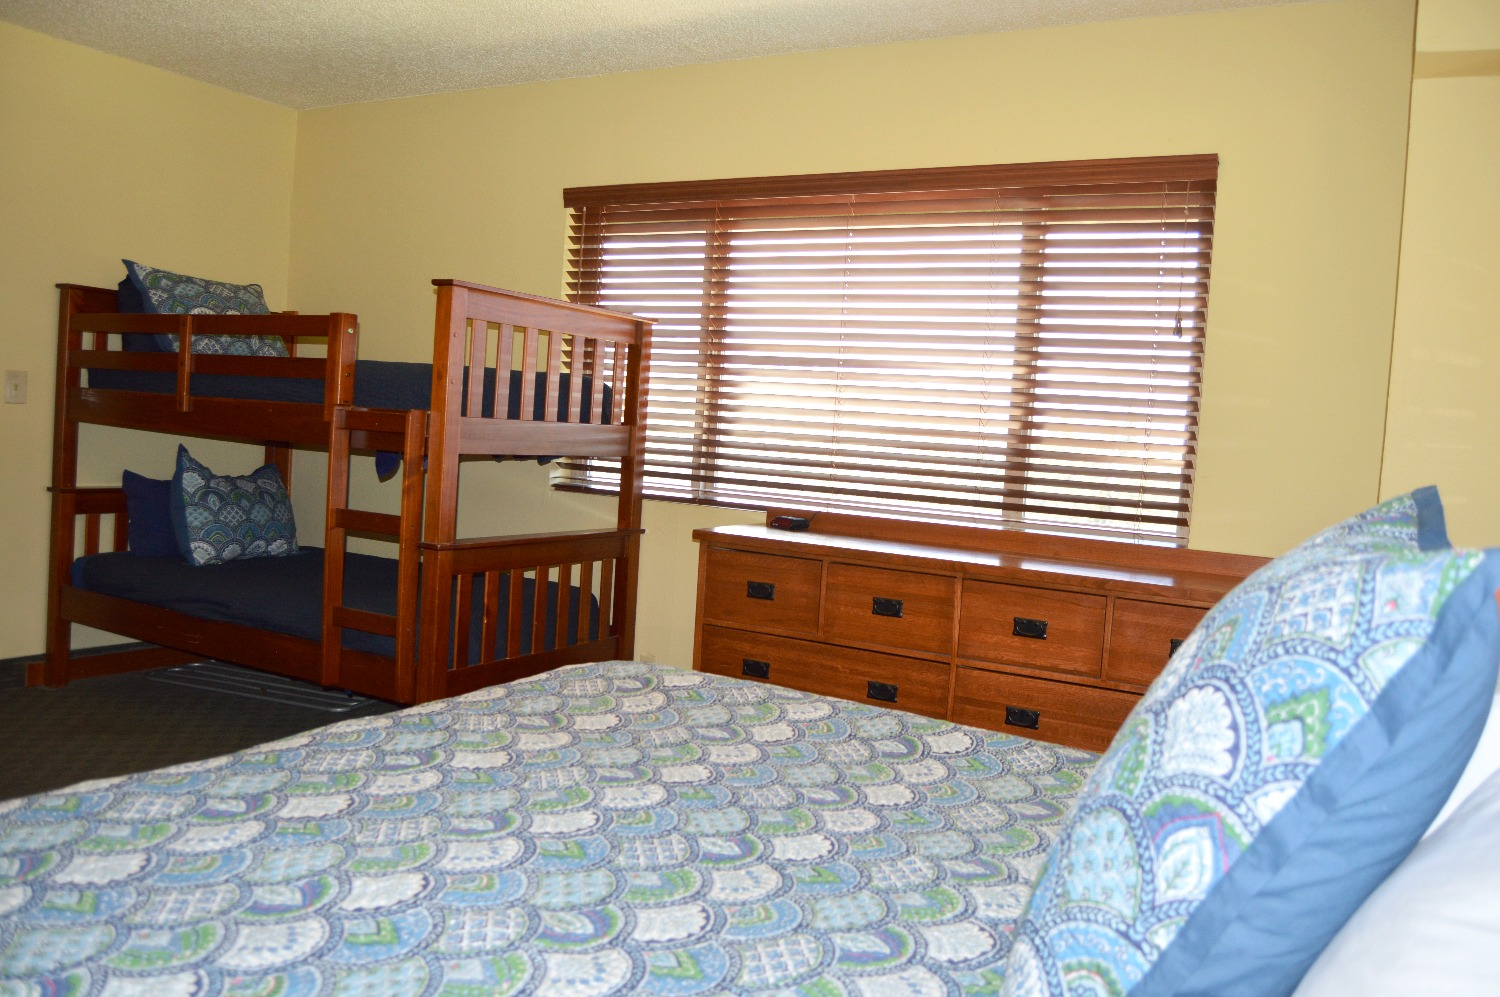 Vintage Family Lodge Room w Bunks